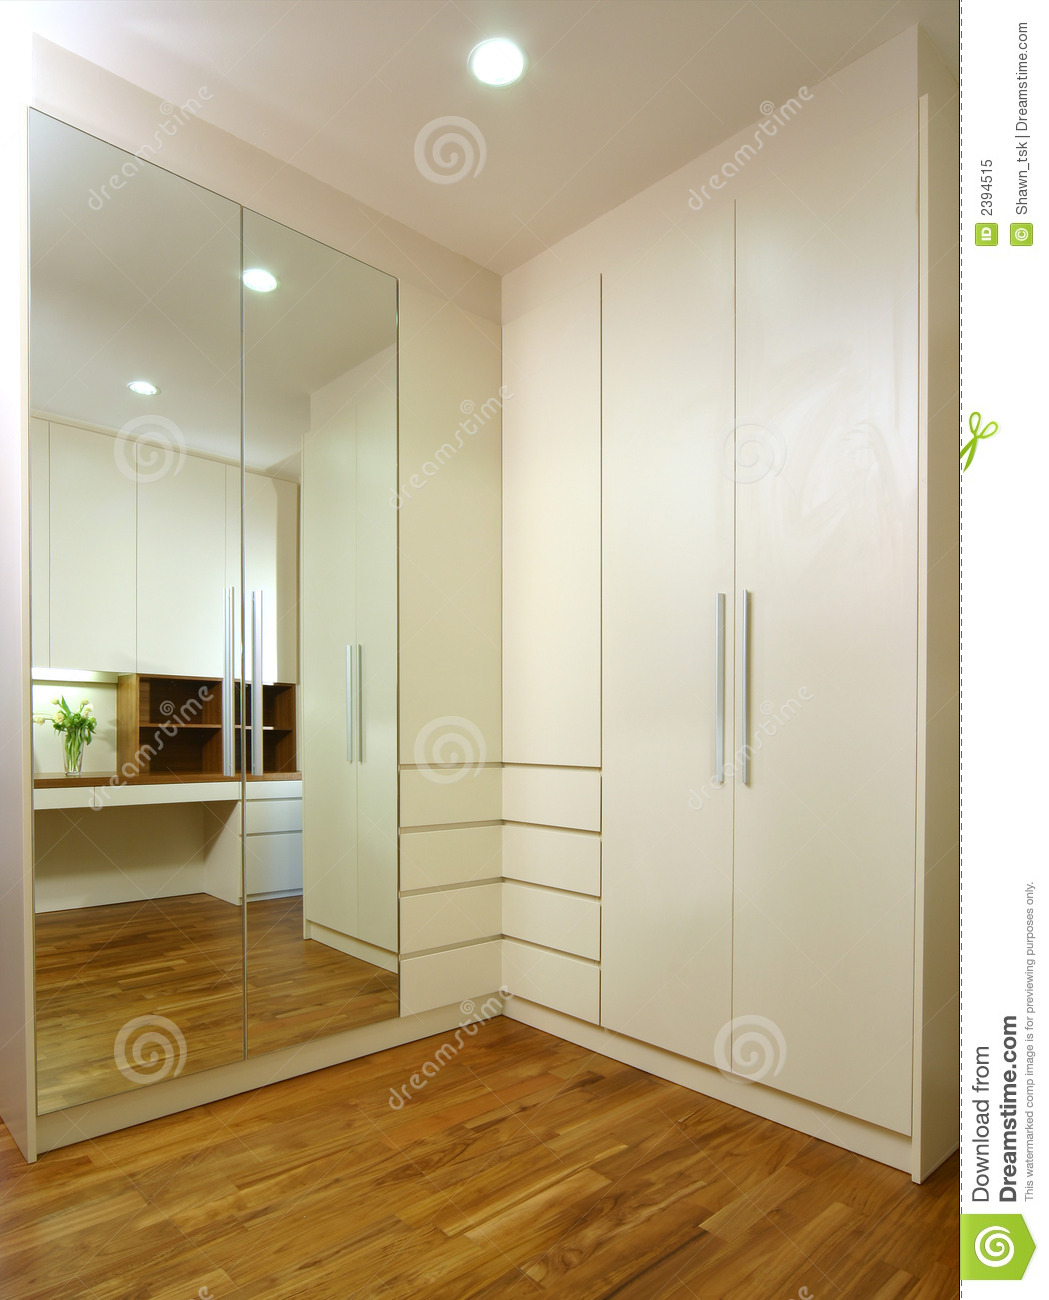 Interior design wardrobe royalty free stock photo for Interior decoration wardrobe designs